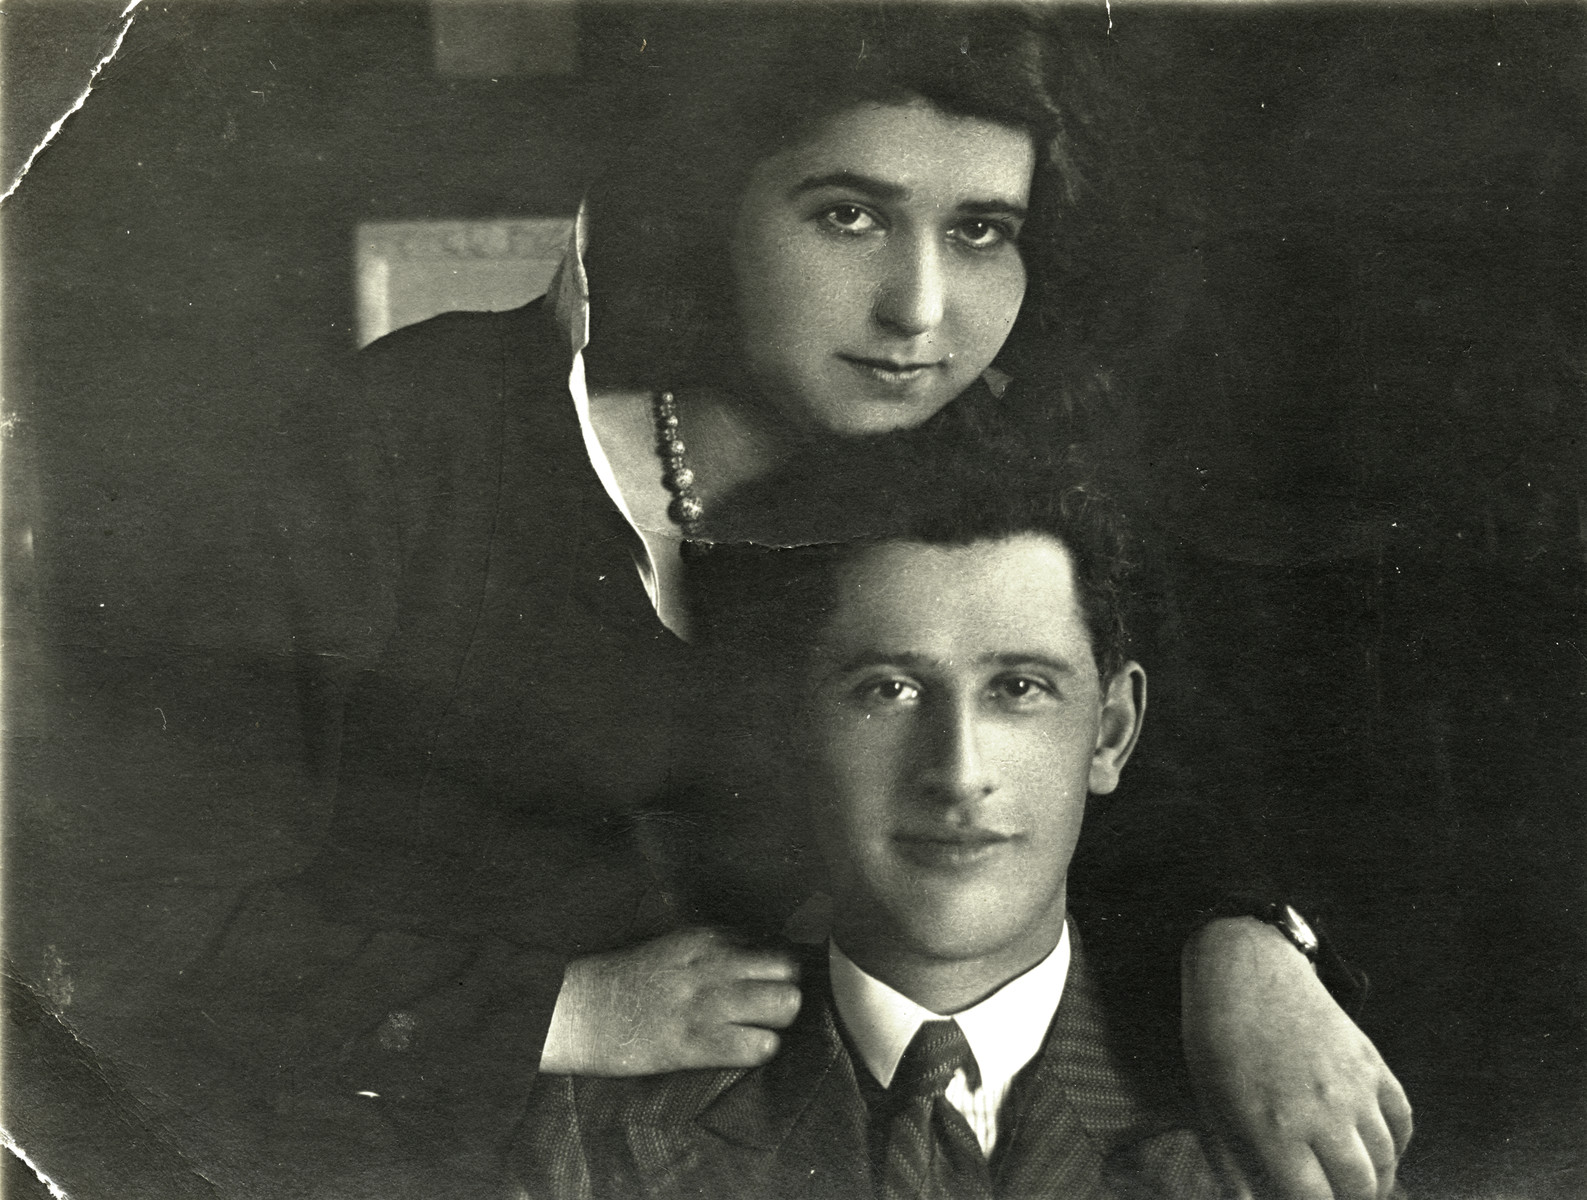 Close-up portrait of first cousins Chana and Pinchas Rudashevsky.